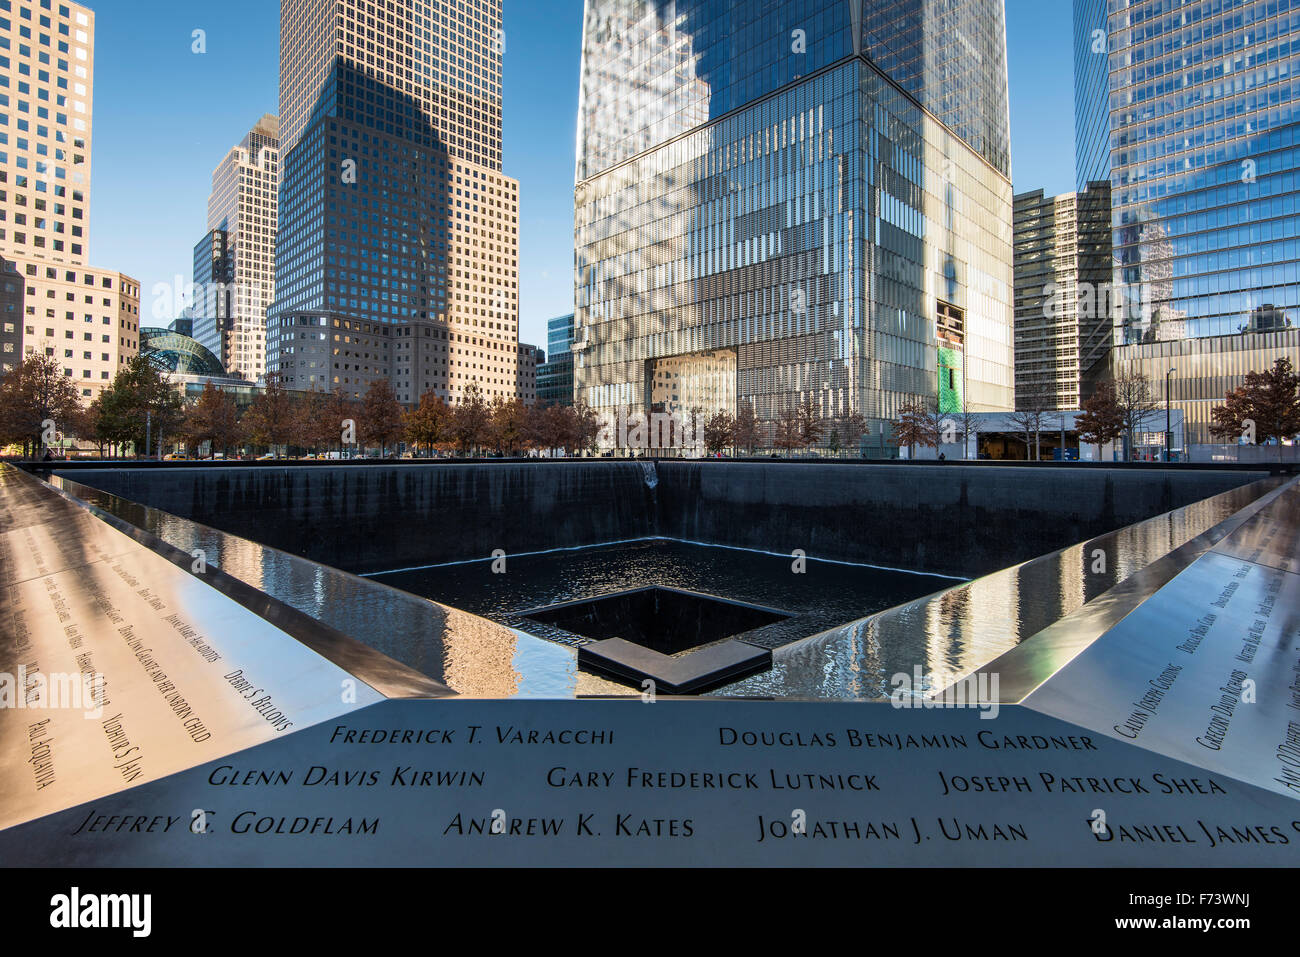 Northern Pool, National September 11 Memorial & Museum, Lower Manhattan, New York, USA Stock Photo